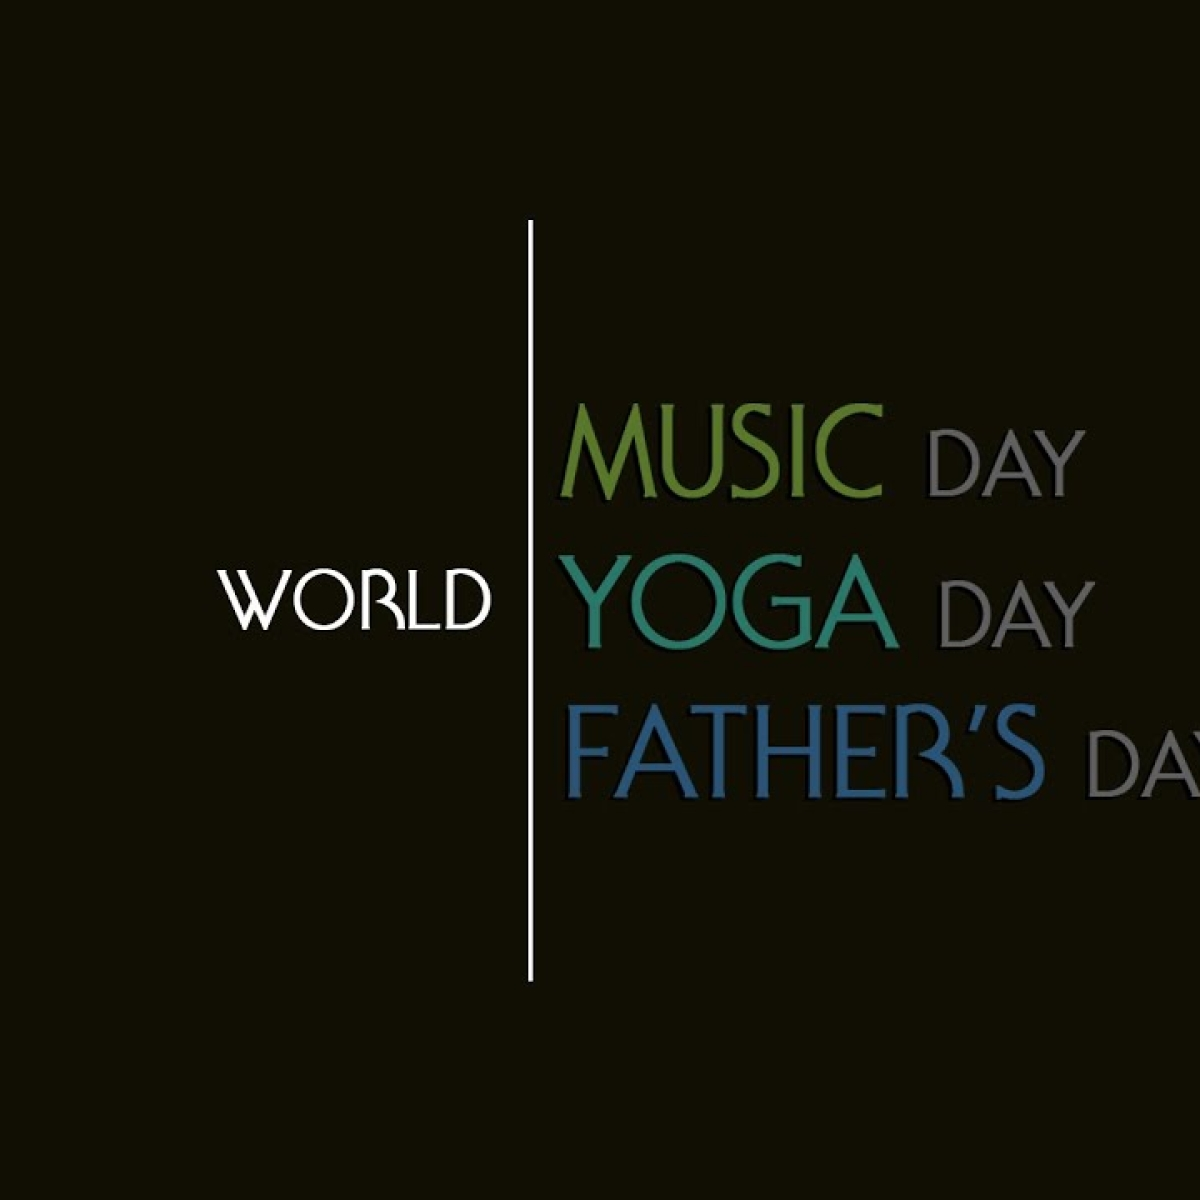 Yoga, Music and Father's Day 2020: FPJ brings you the best stories from Indore